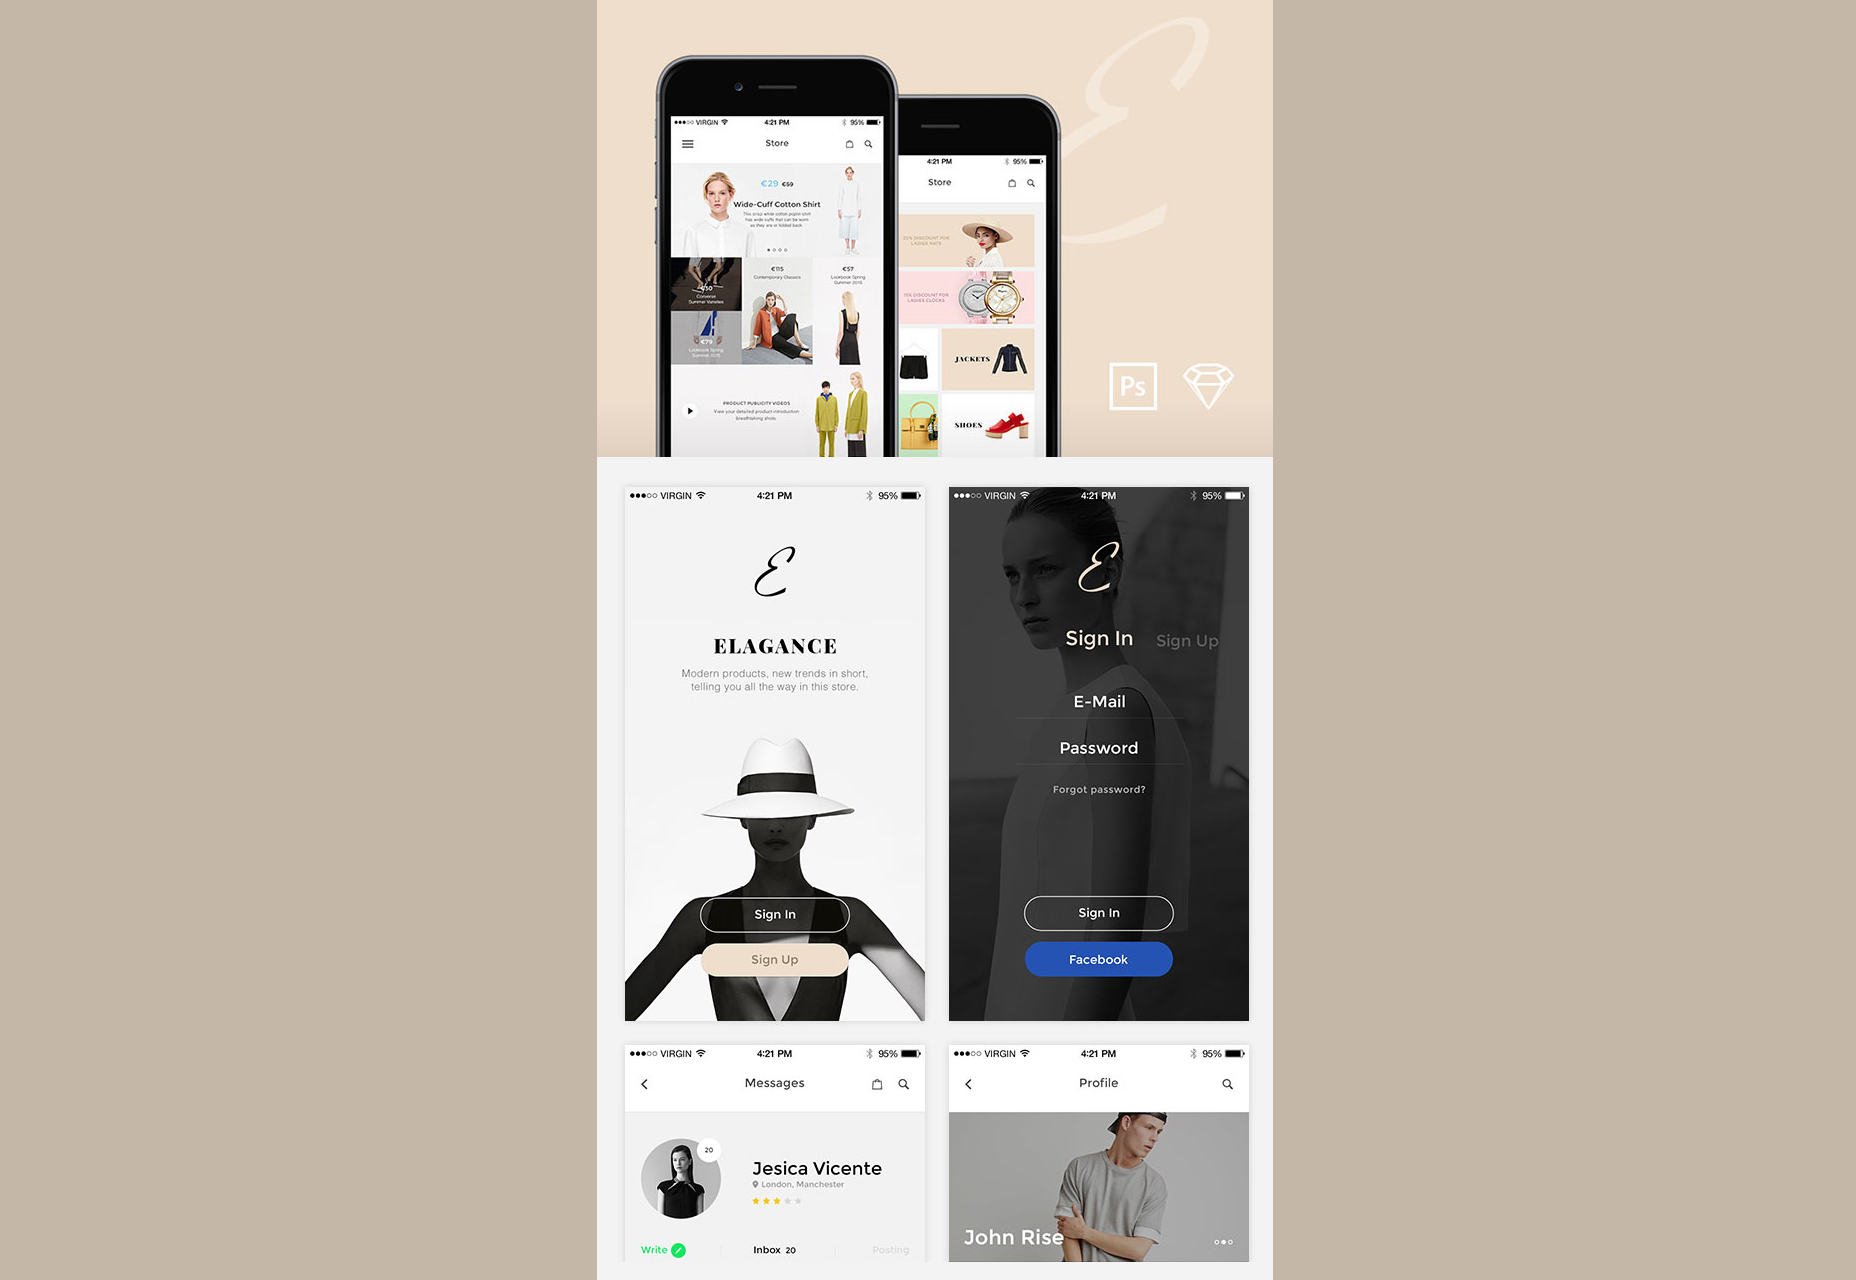 elegance-soft-fashion-schemed-ios-ui-kit-